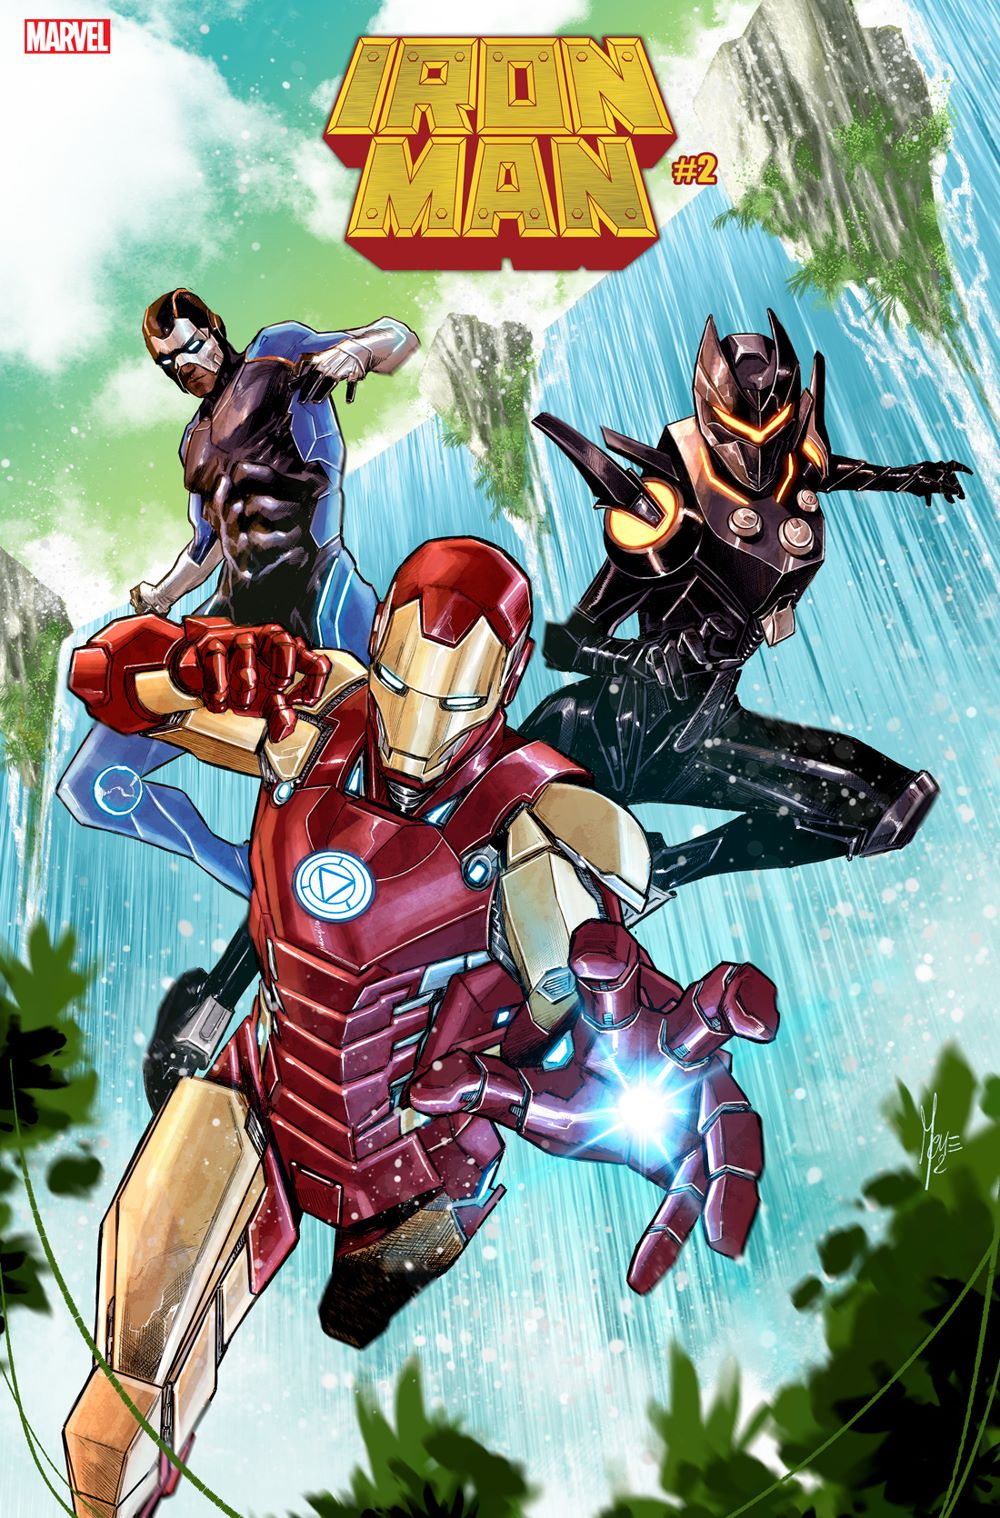 IM2020002_Checchetto-FortniteVariant Marvel and Fortnite characters unite on special variant covers